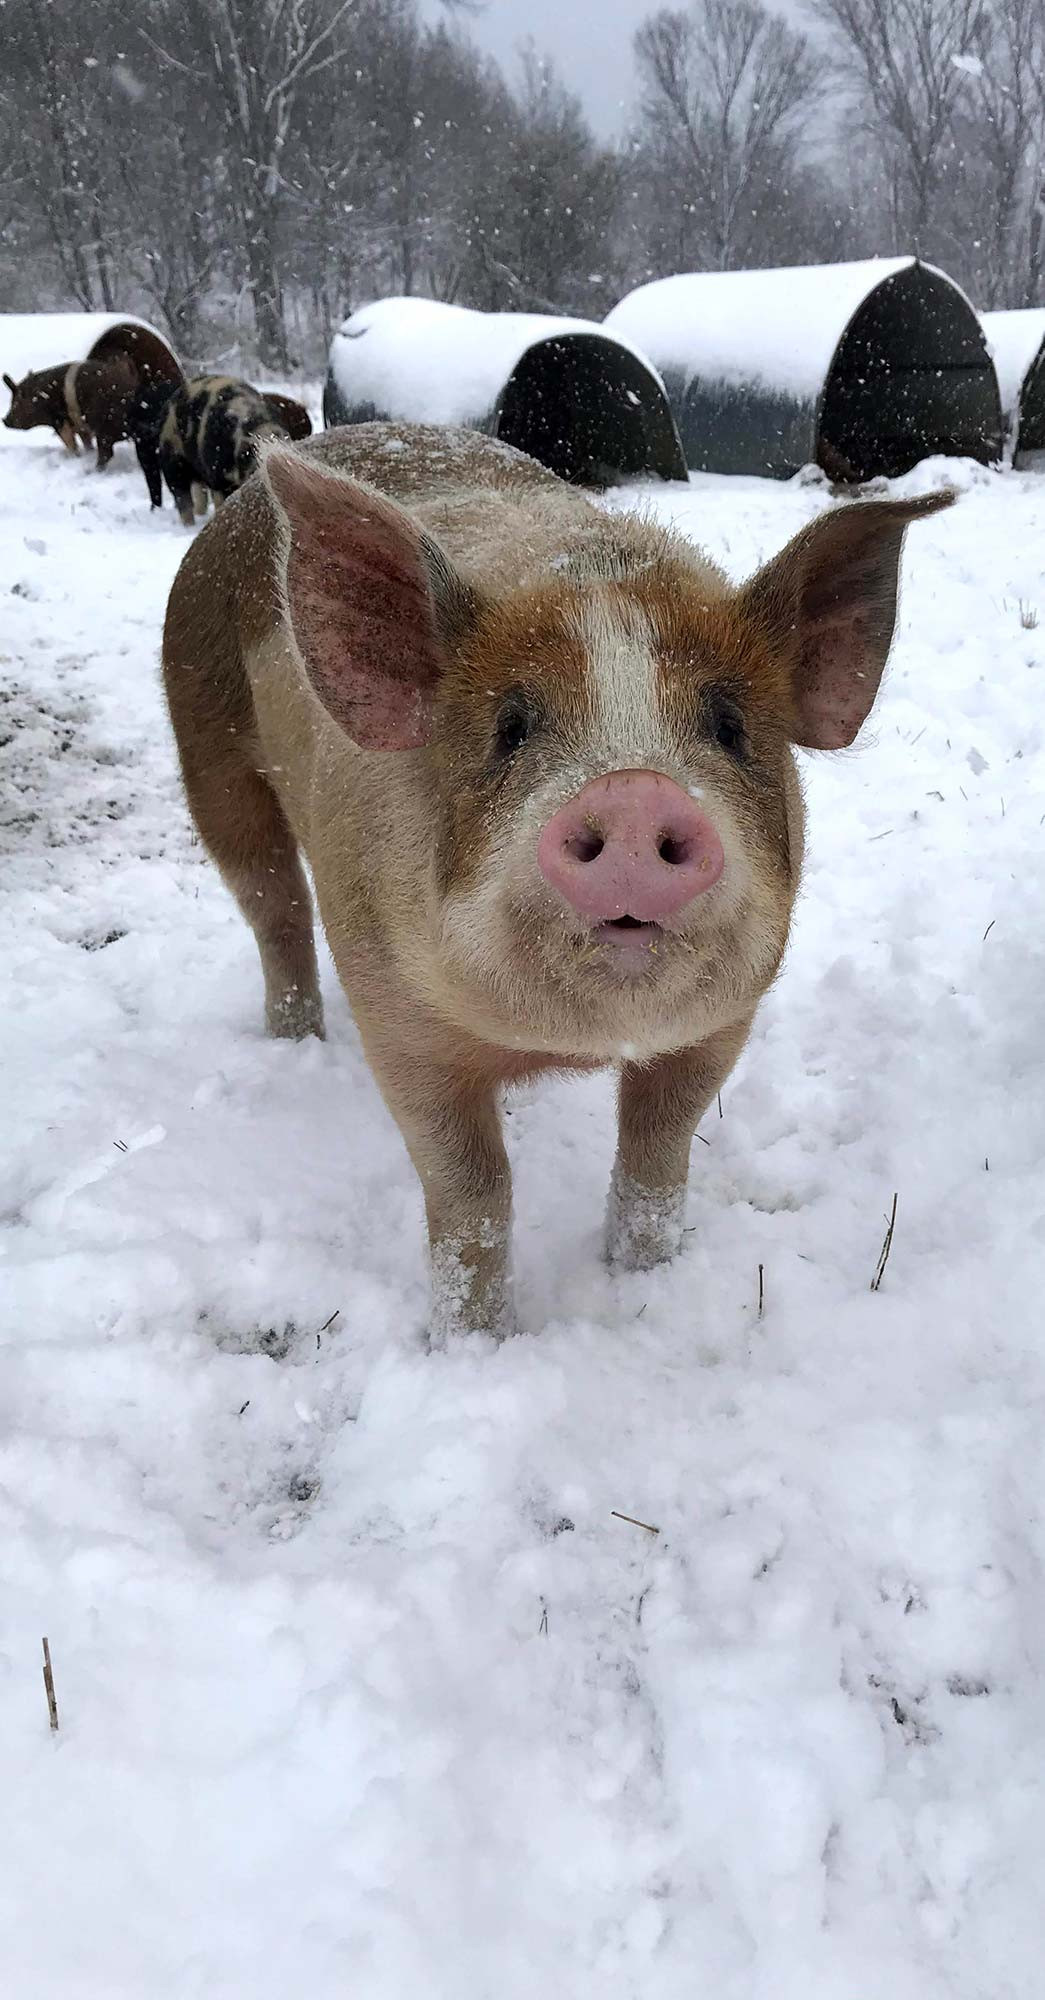 pigs in the winter